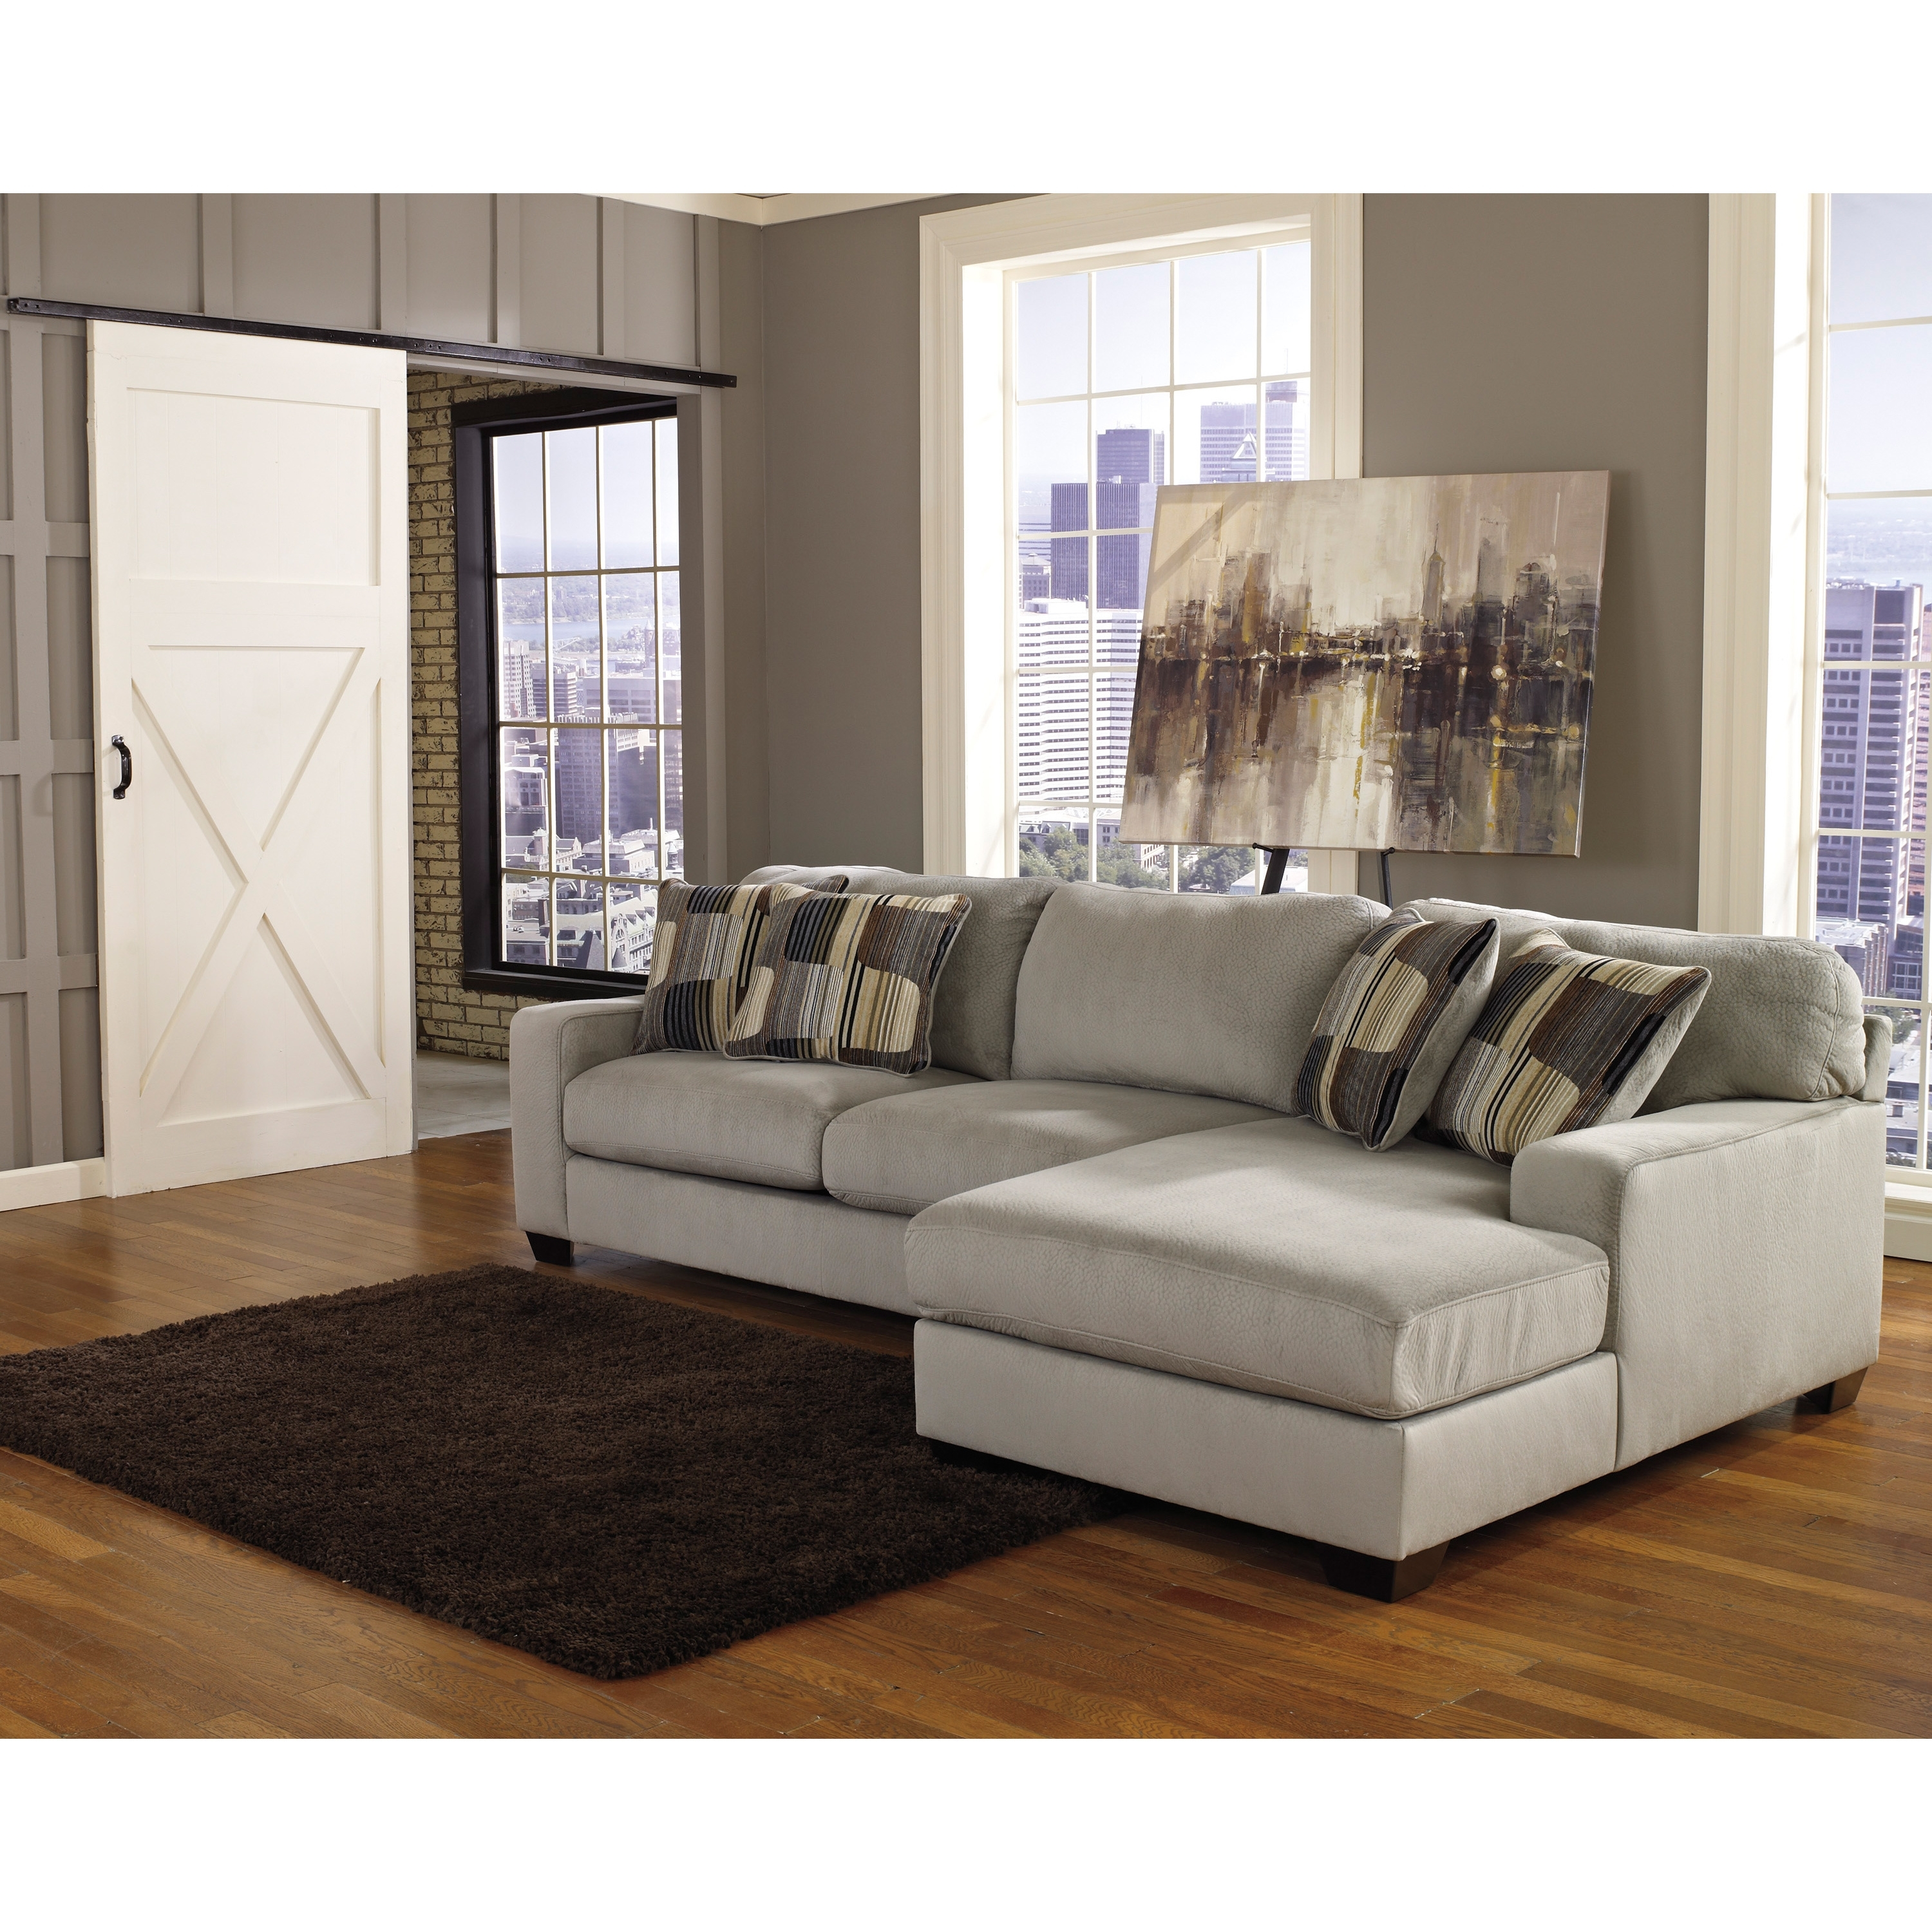 Well Known Western Style Sectional Sofas Inside Western Style Sectional Sofas – Fjellkjeden (View 10 of 15)